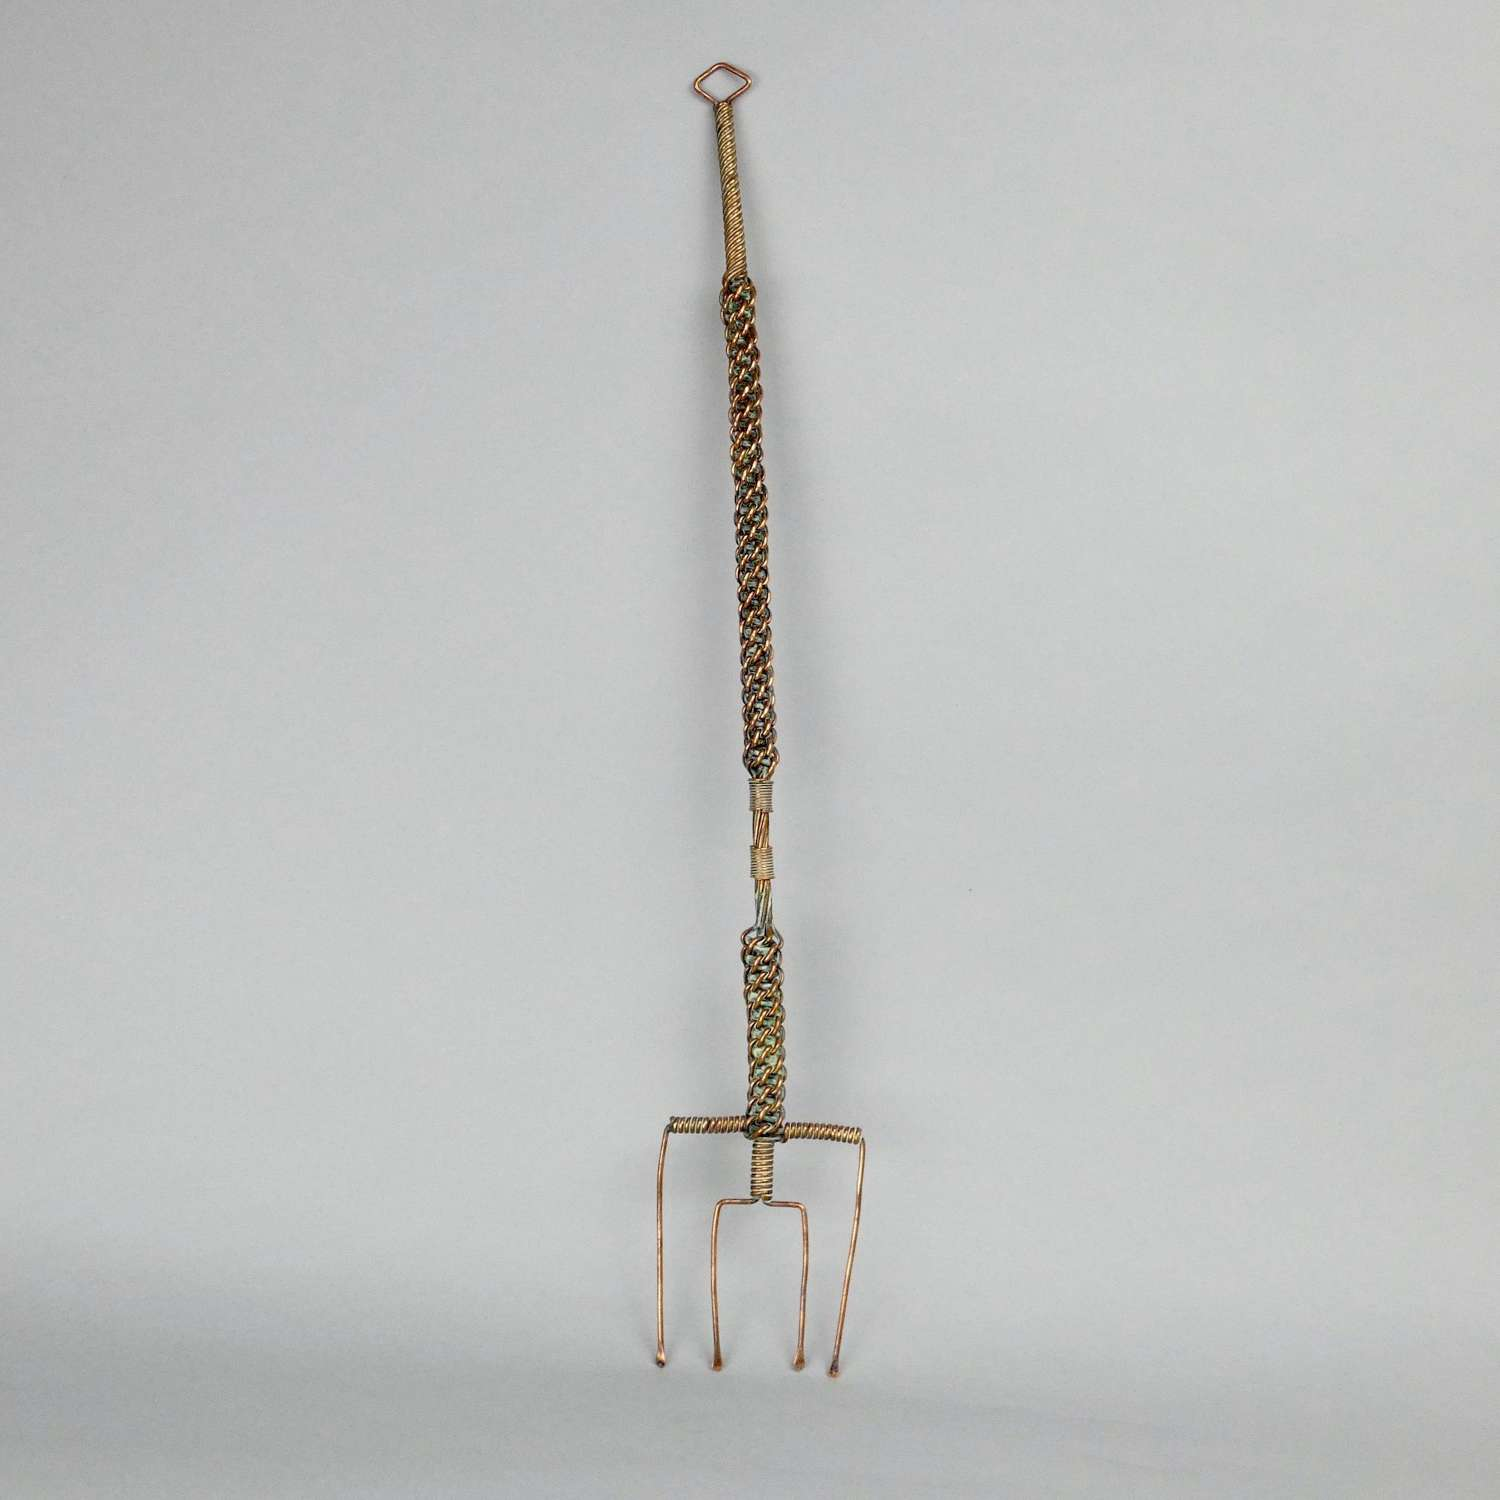 Unusual, copper wirework toasting fork